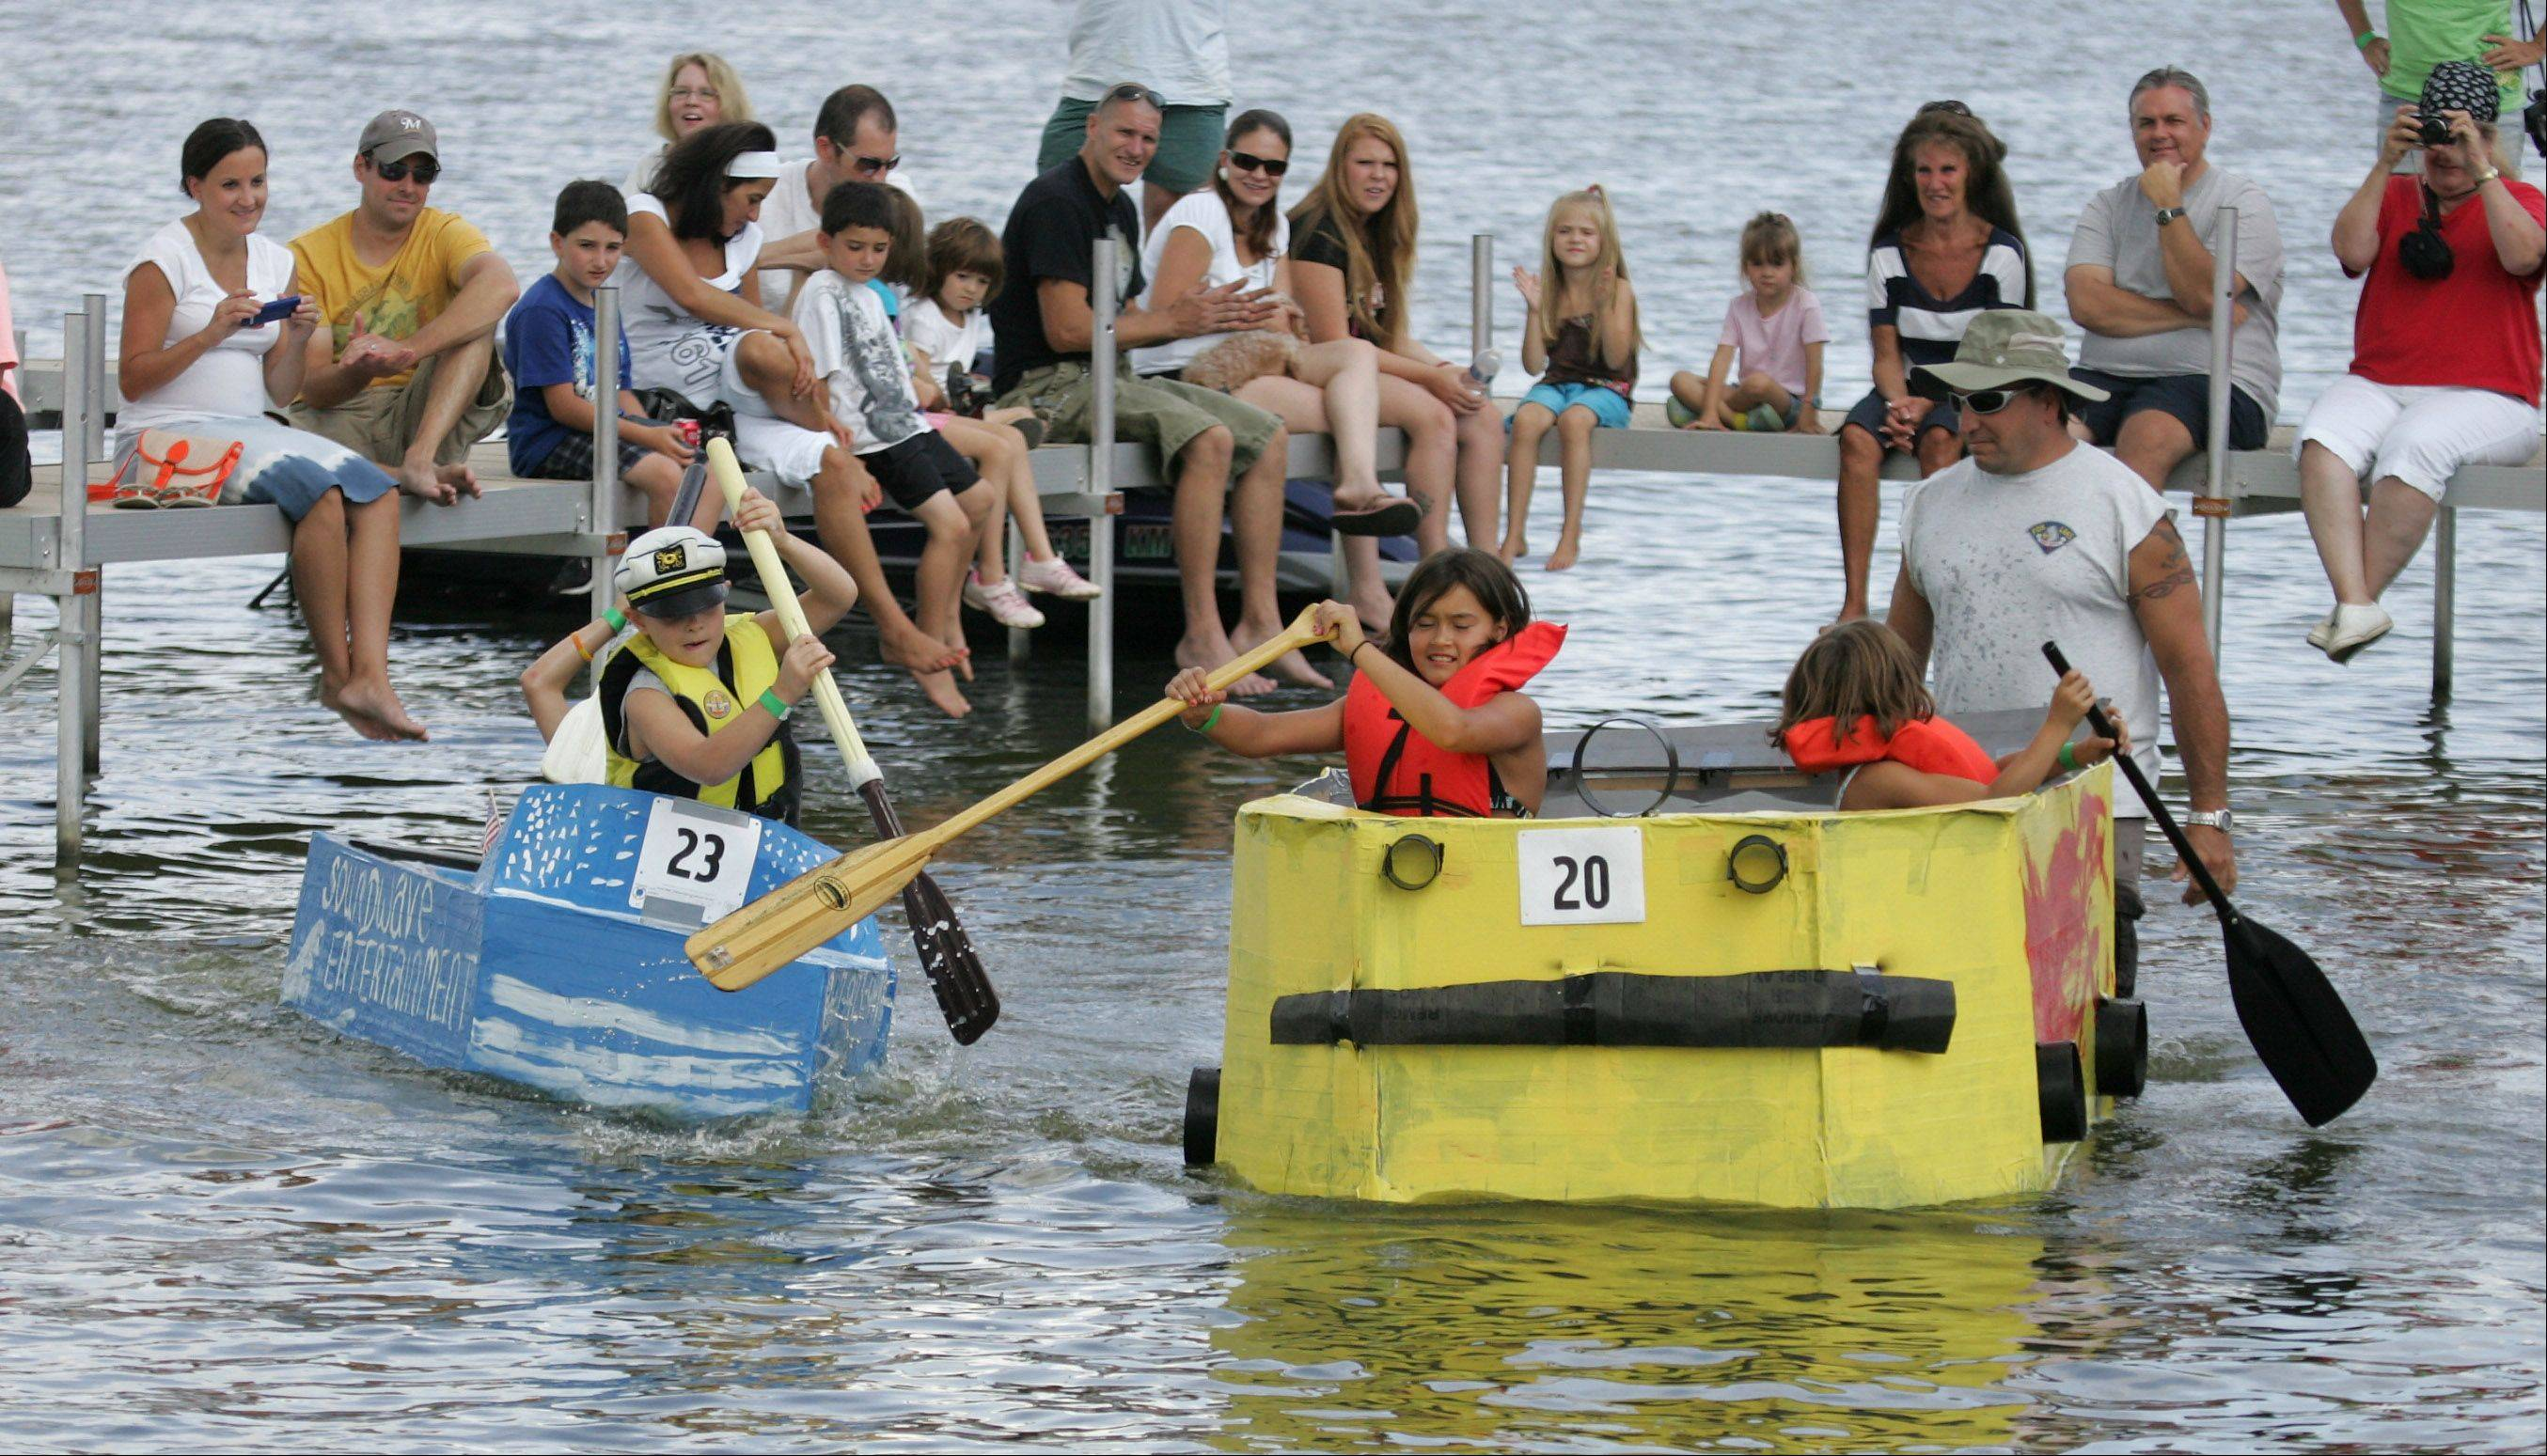 Spectators on the dock watch as the Soundwave Entertainmant boat battles the Yellow Car Boat during the annual Cardboard Cup Regatta Sunday at Lakefront Park in Fox Lake.